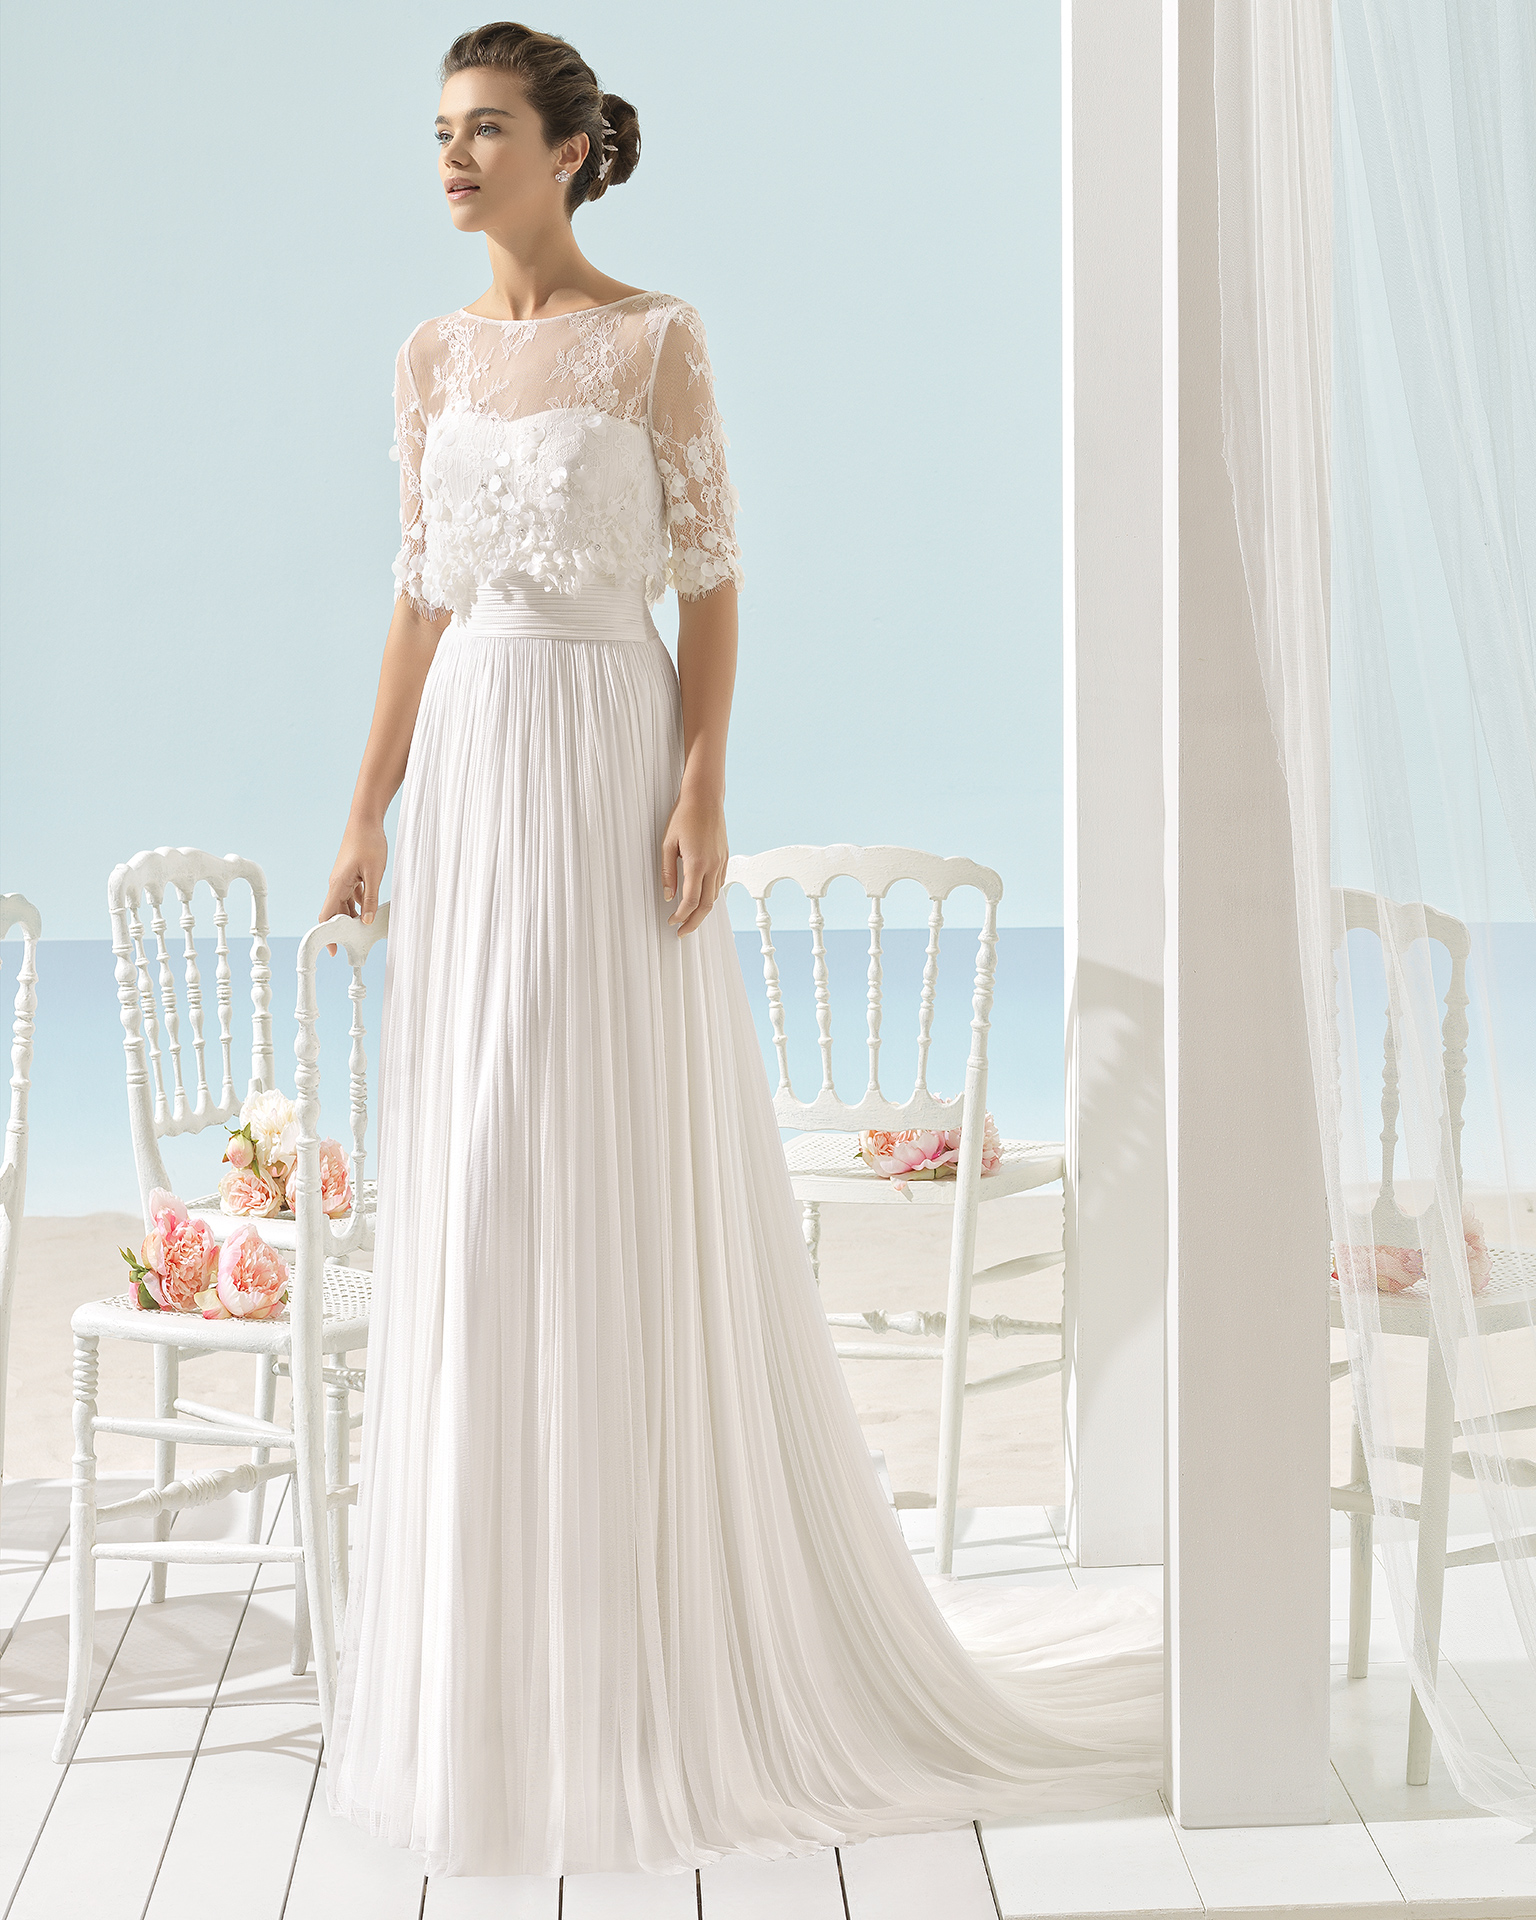 XENA Abito da sposa Aire Barcelona Beach Wedding 2017